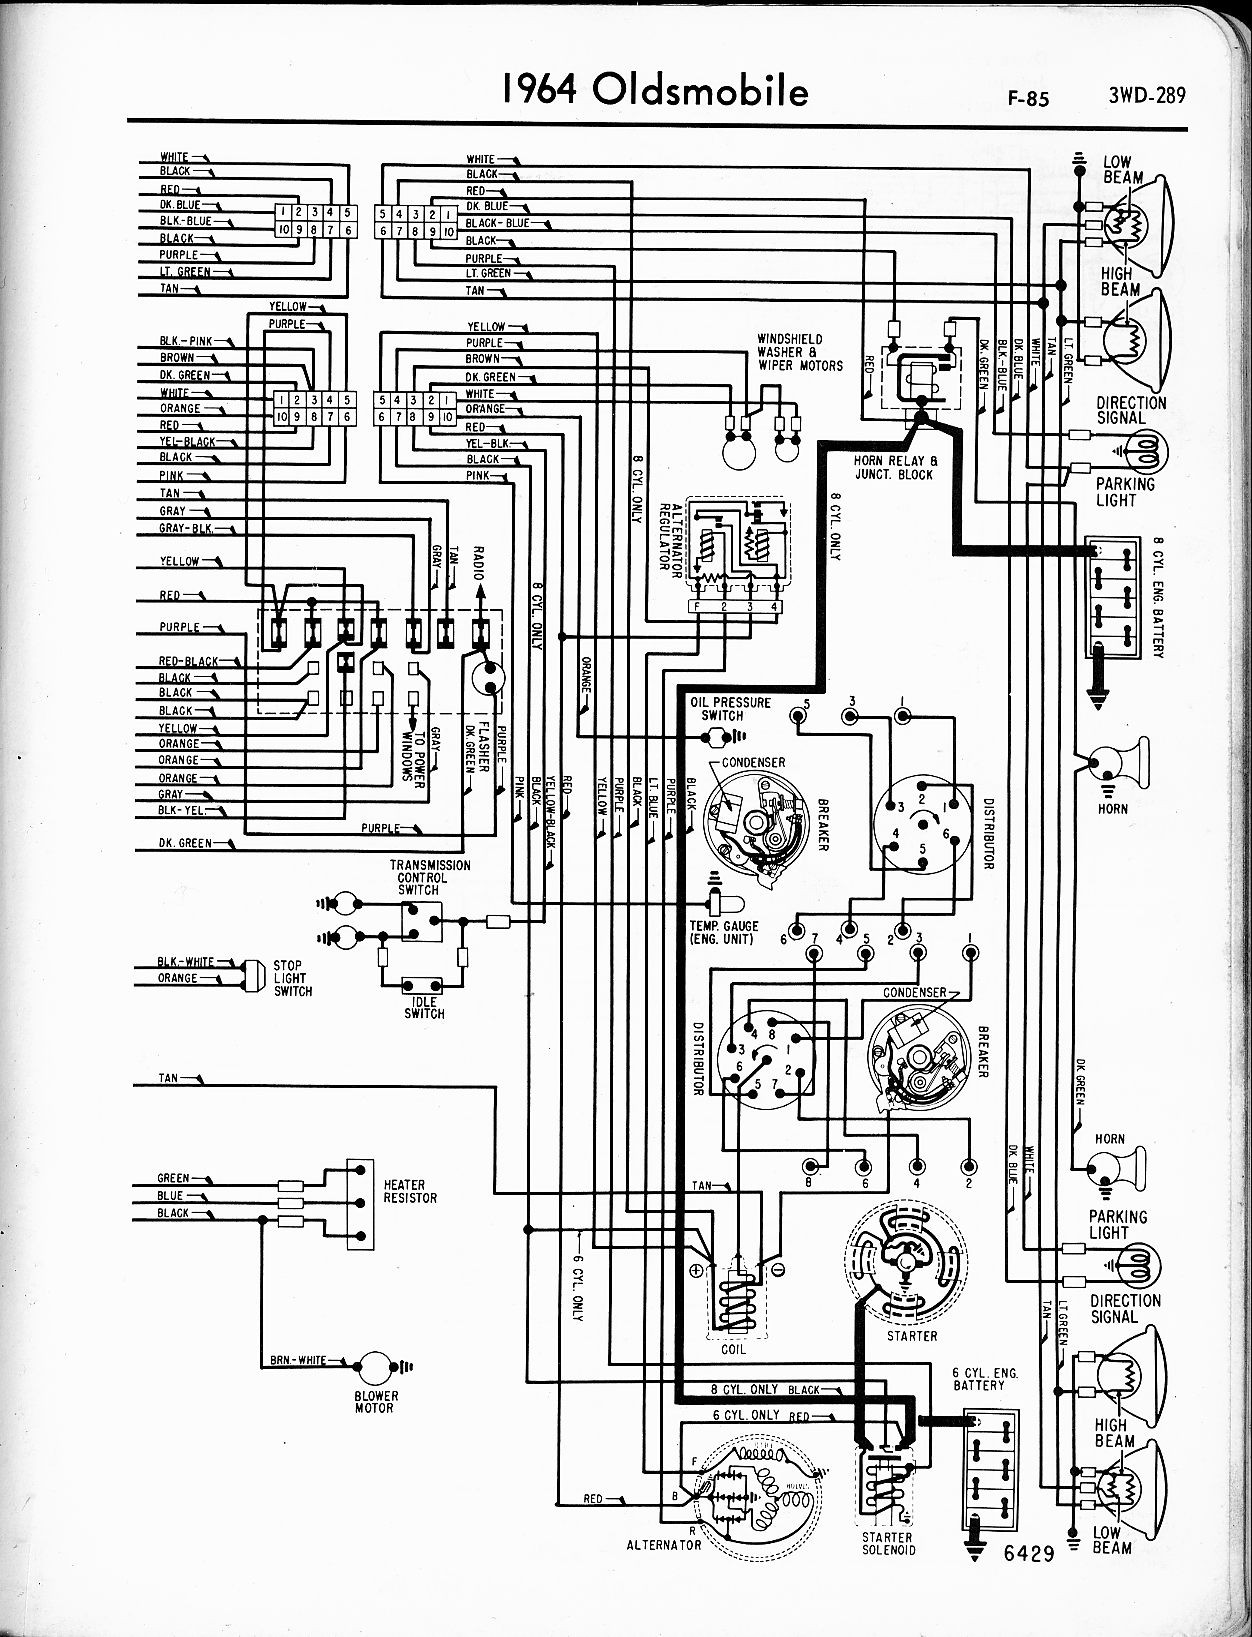 Alero 3 4 Liter Engine Block Diagram - Wiring Schematics on